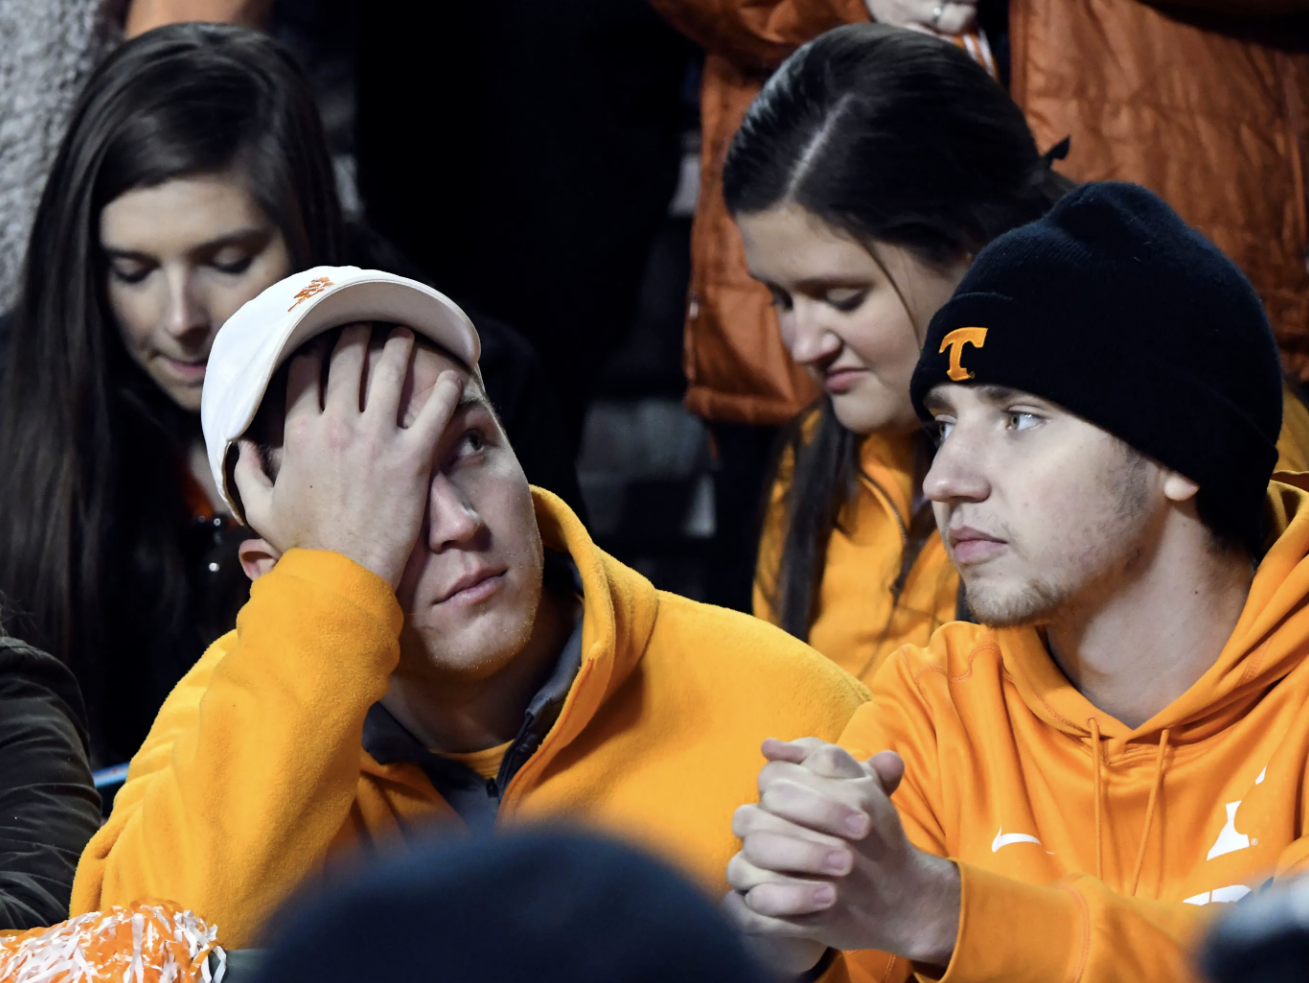 A Tennessee fan shows his displeasure during the Tennessee and Missouri football game on Saturday, Nov. 17, 2018. Missouri defeated Tennessee 50-17.